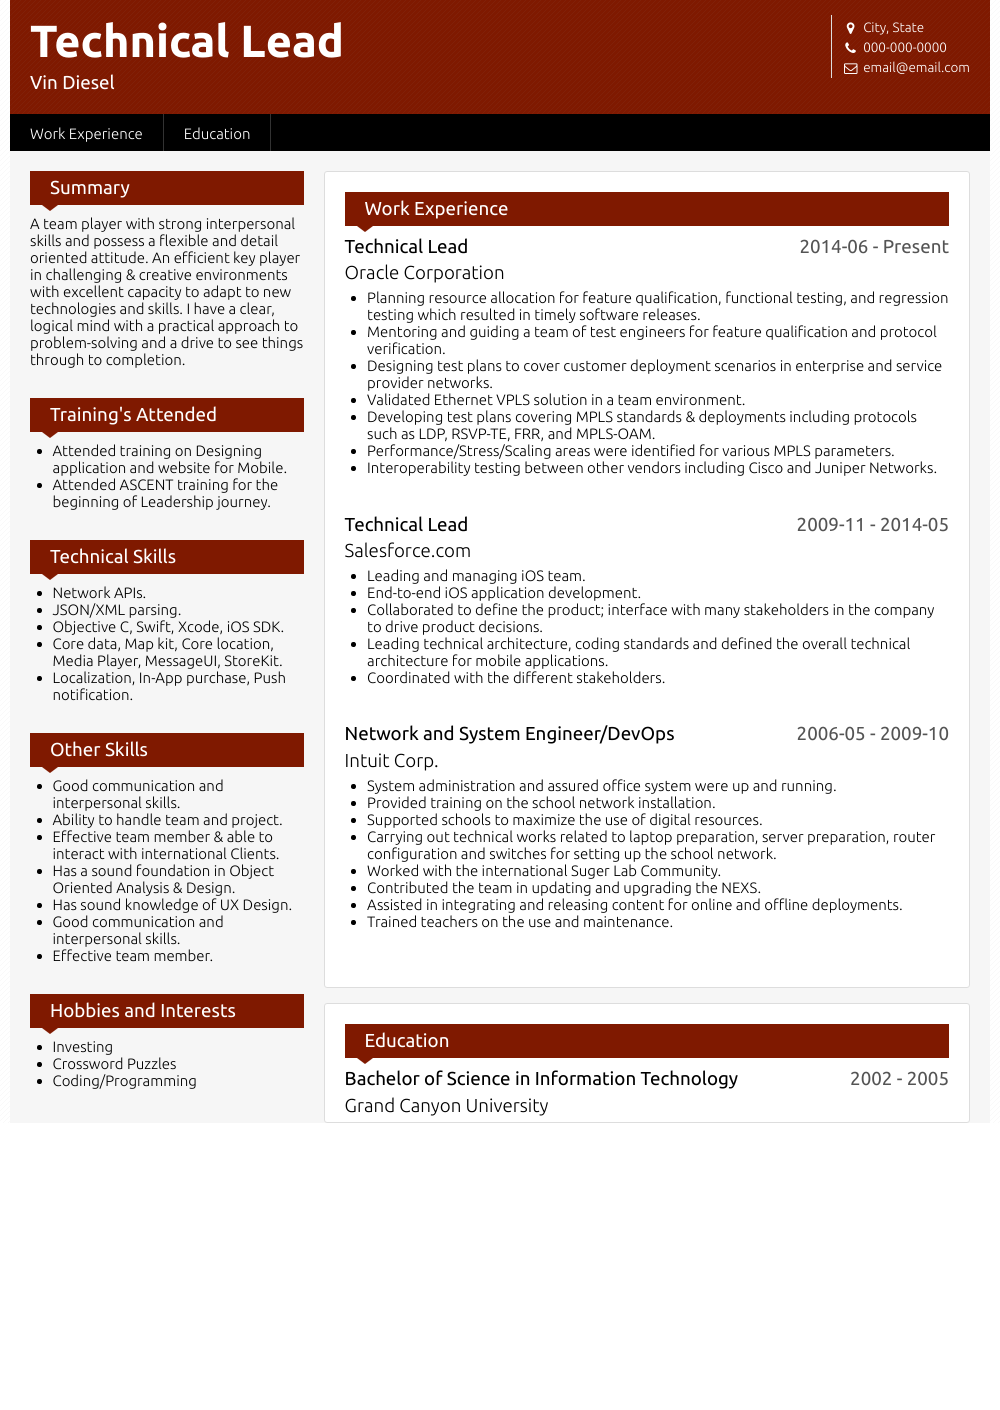 Technical Lead Resume Sample